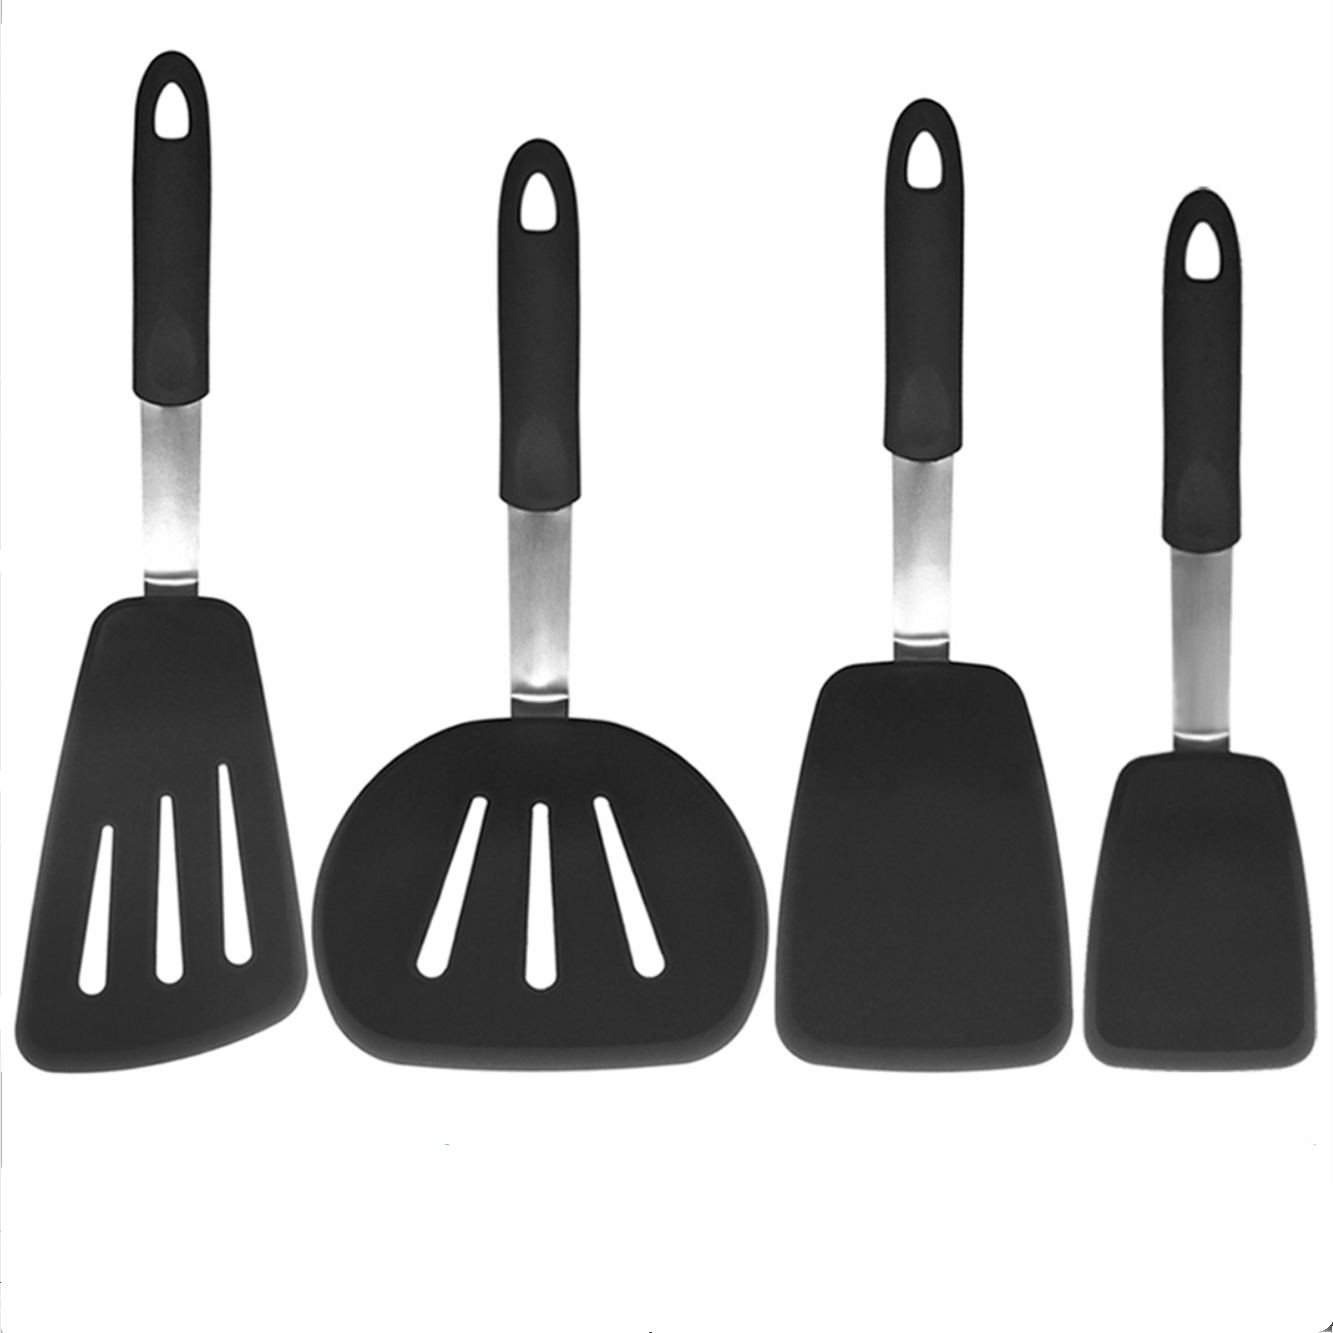 4pcs Silicone Cooking Kitchen Utensils Set Non Toxic Silicone Turner Tongs Spatula Spoon